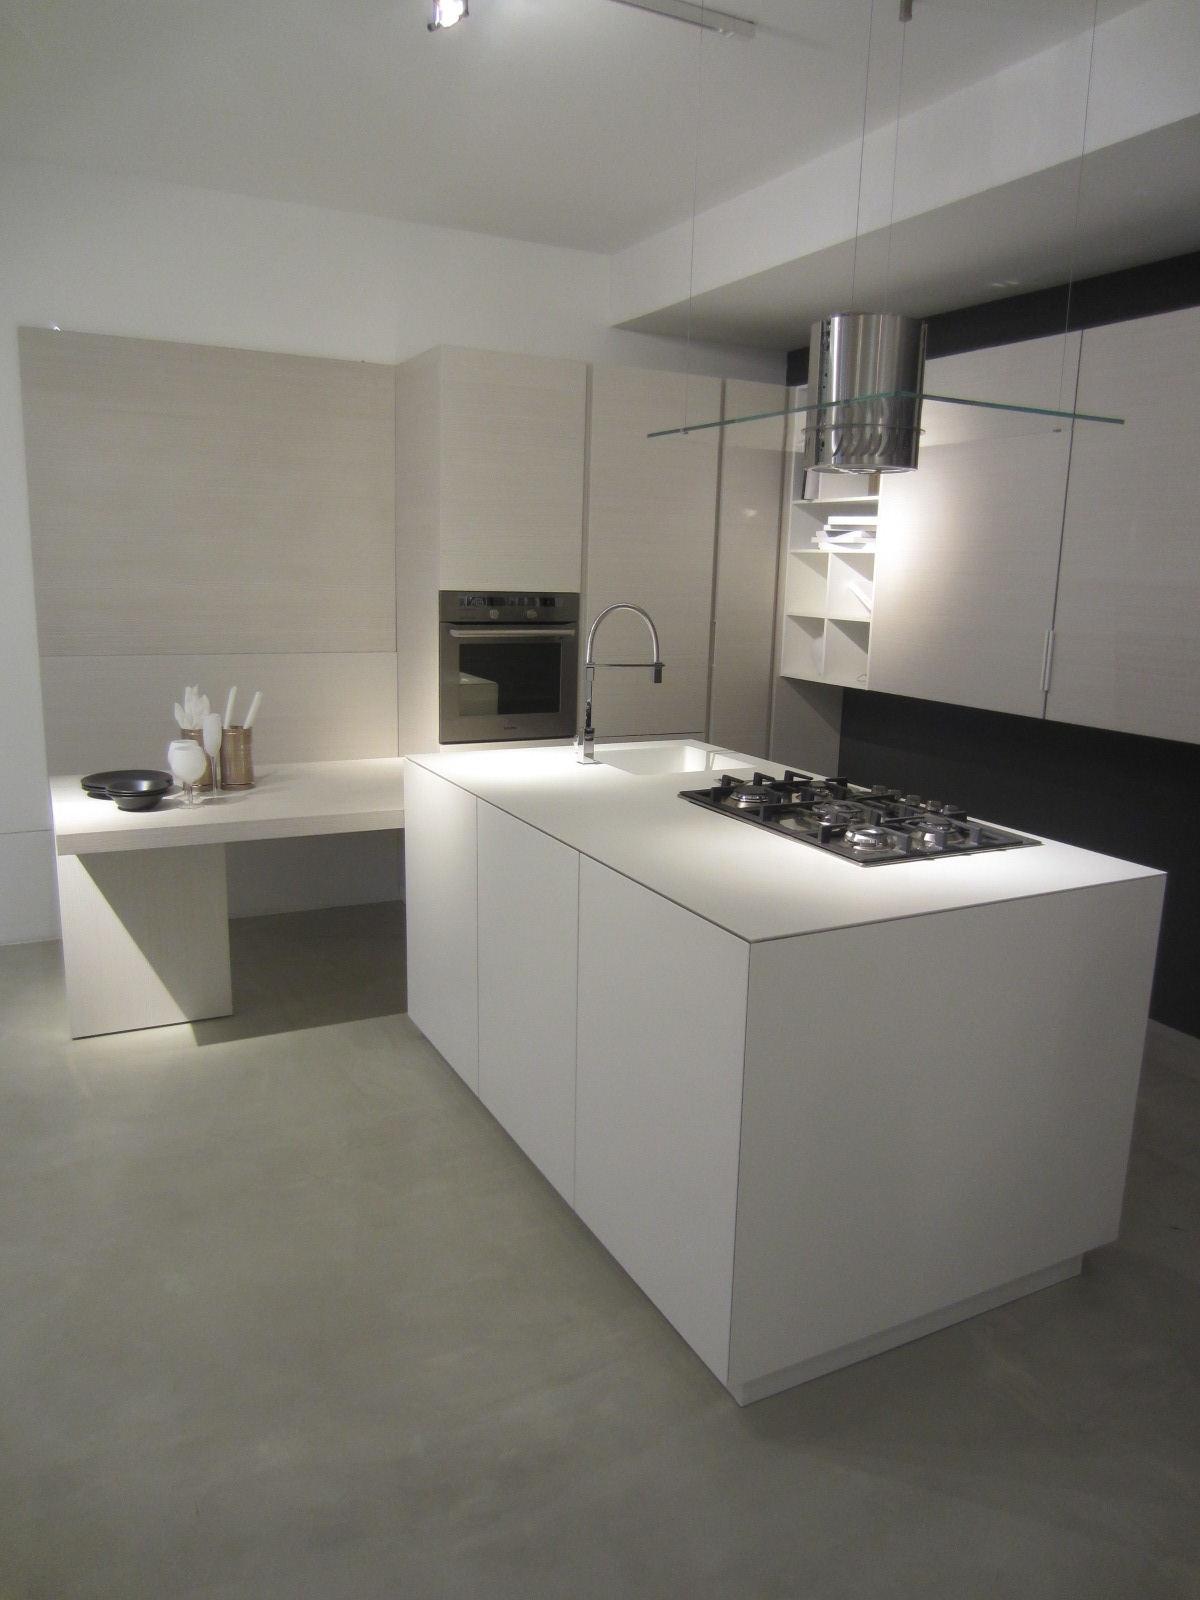 Gallery of awesome cesar cucine opinioni images ideas design with cucina cesar - Cucine cesar opinioni ...